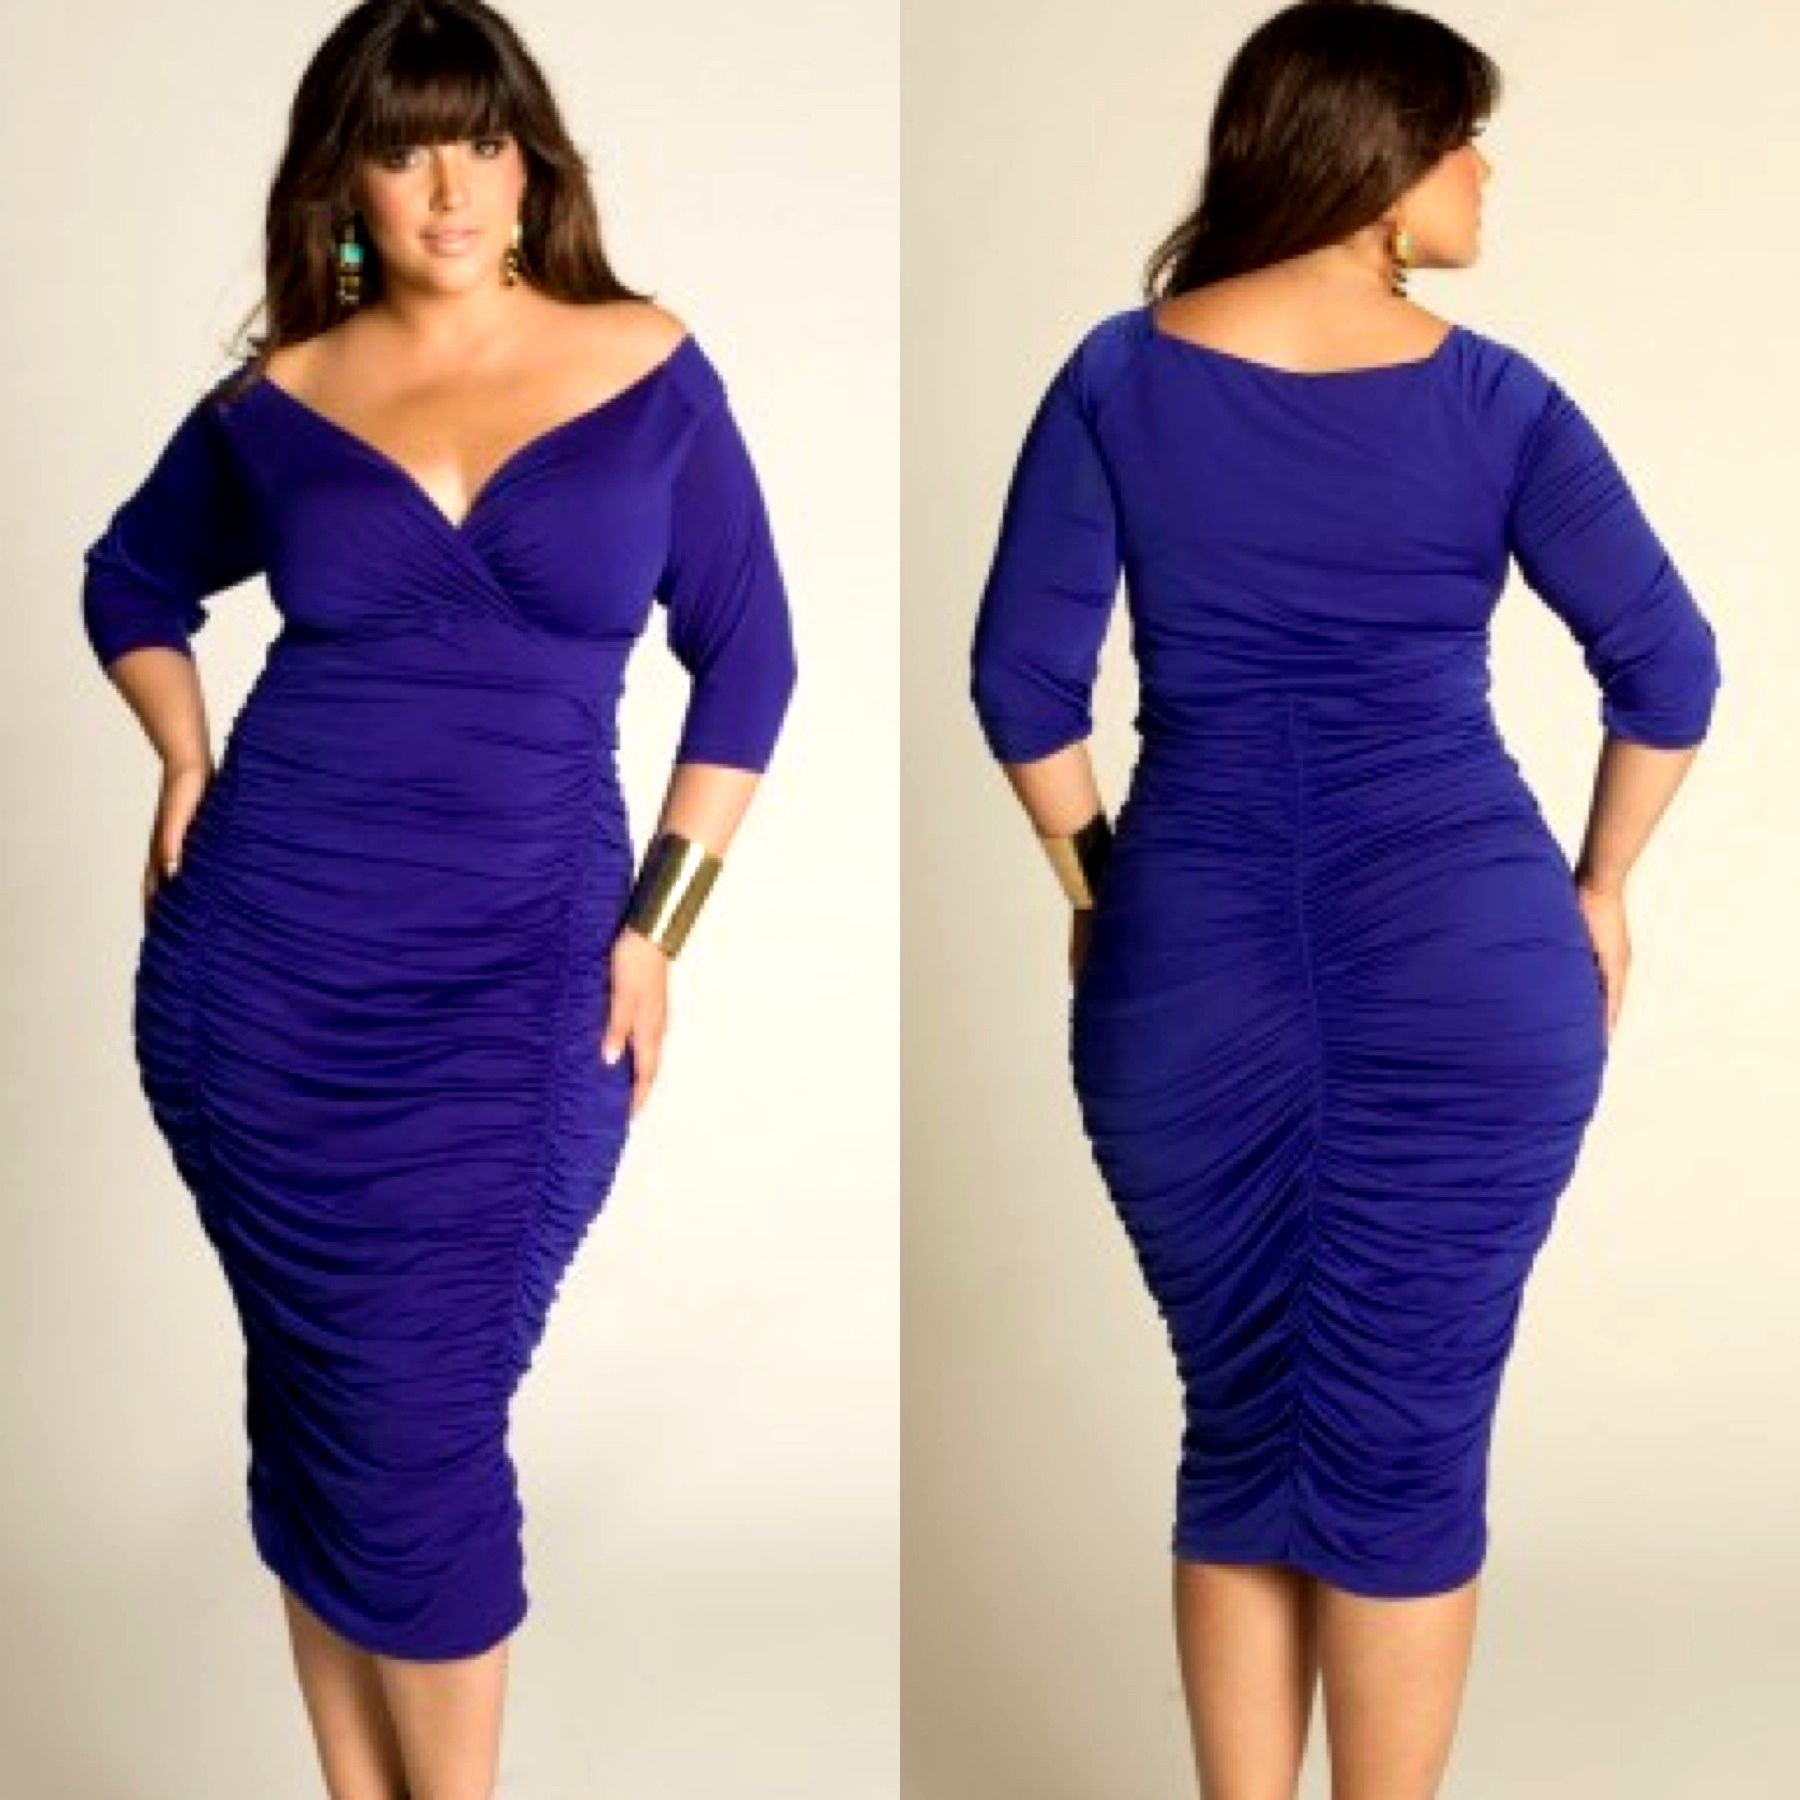 Plus Size & Curvy women. Dress from IGIG. | Wardrobe Inspiration ...